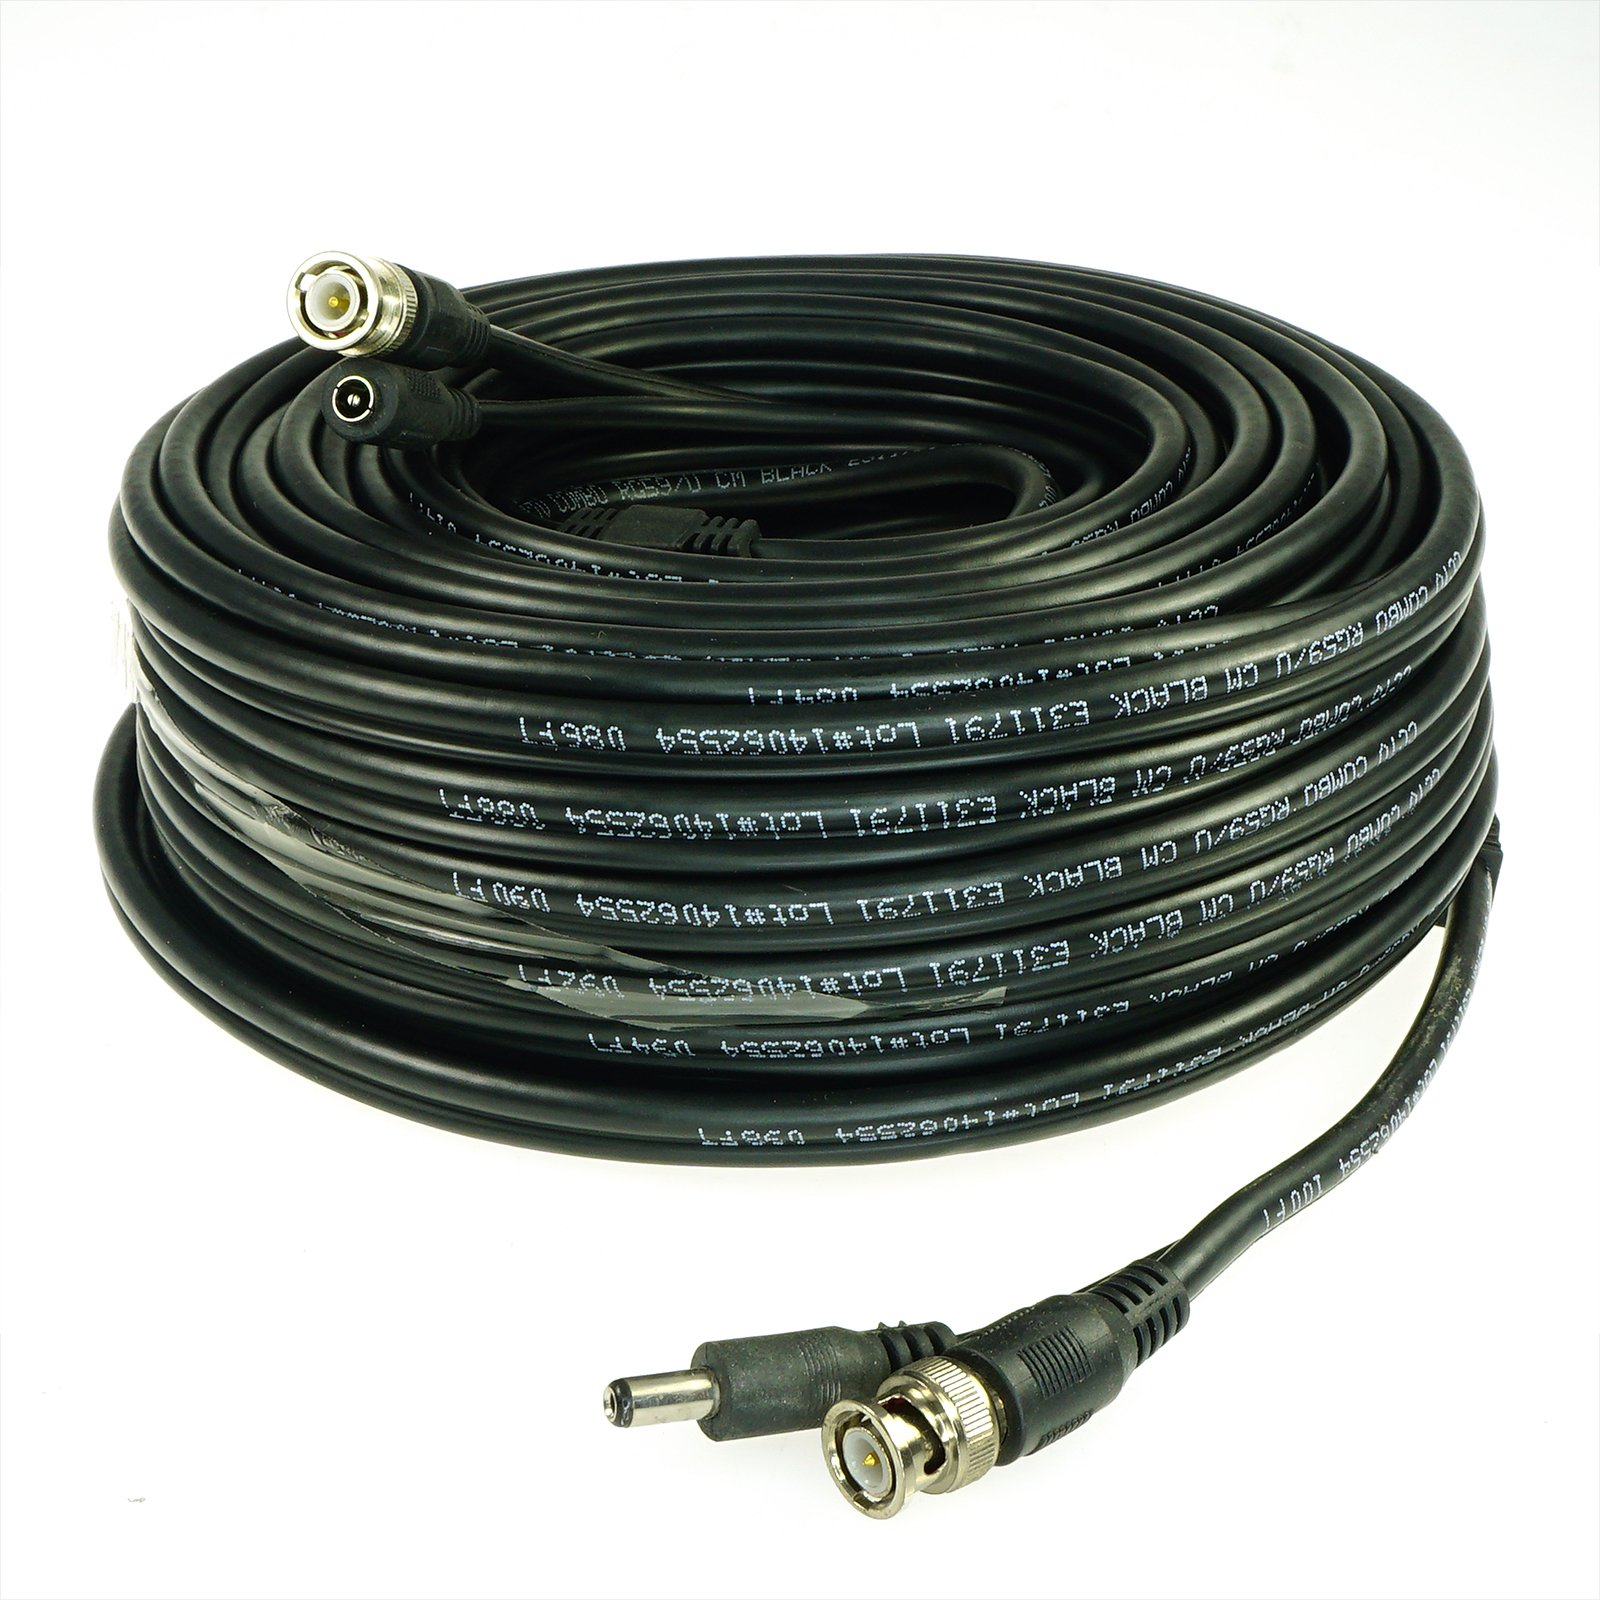 Five Star Cable RG59 150 Ft Siamese Combo Cable for CVI, TVI, AHD and HD-SDI Camera System with BNC Connectors and 2.1mm Power Jack for Plug and Play Connections by Five Star